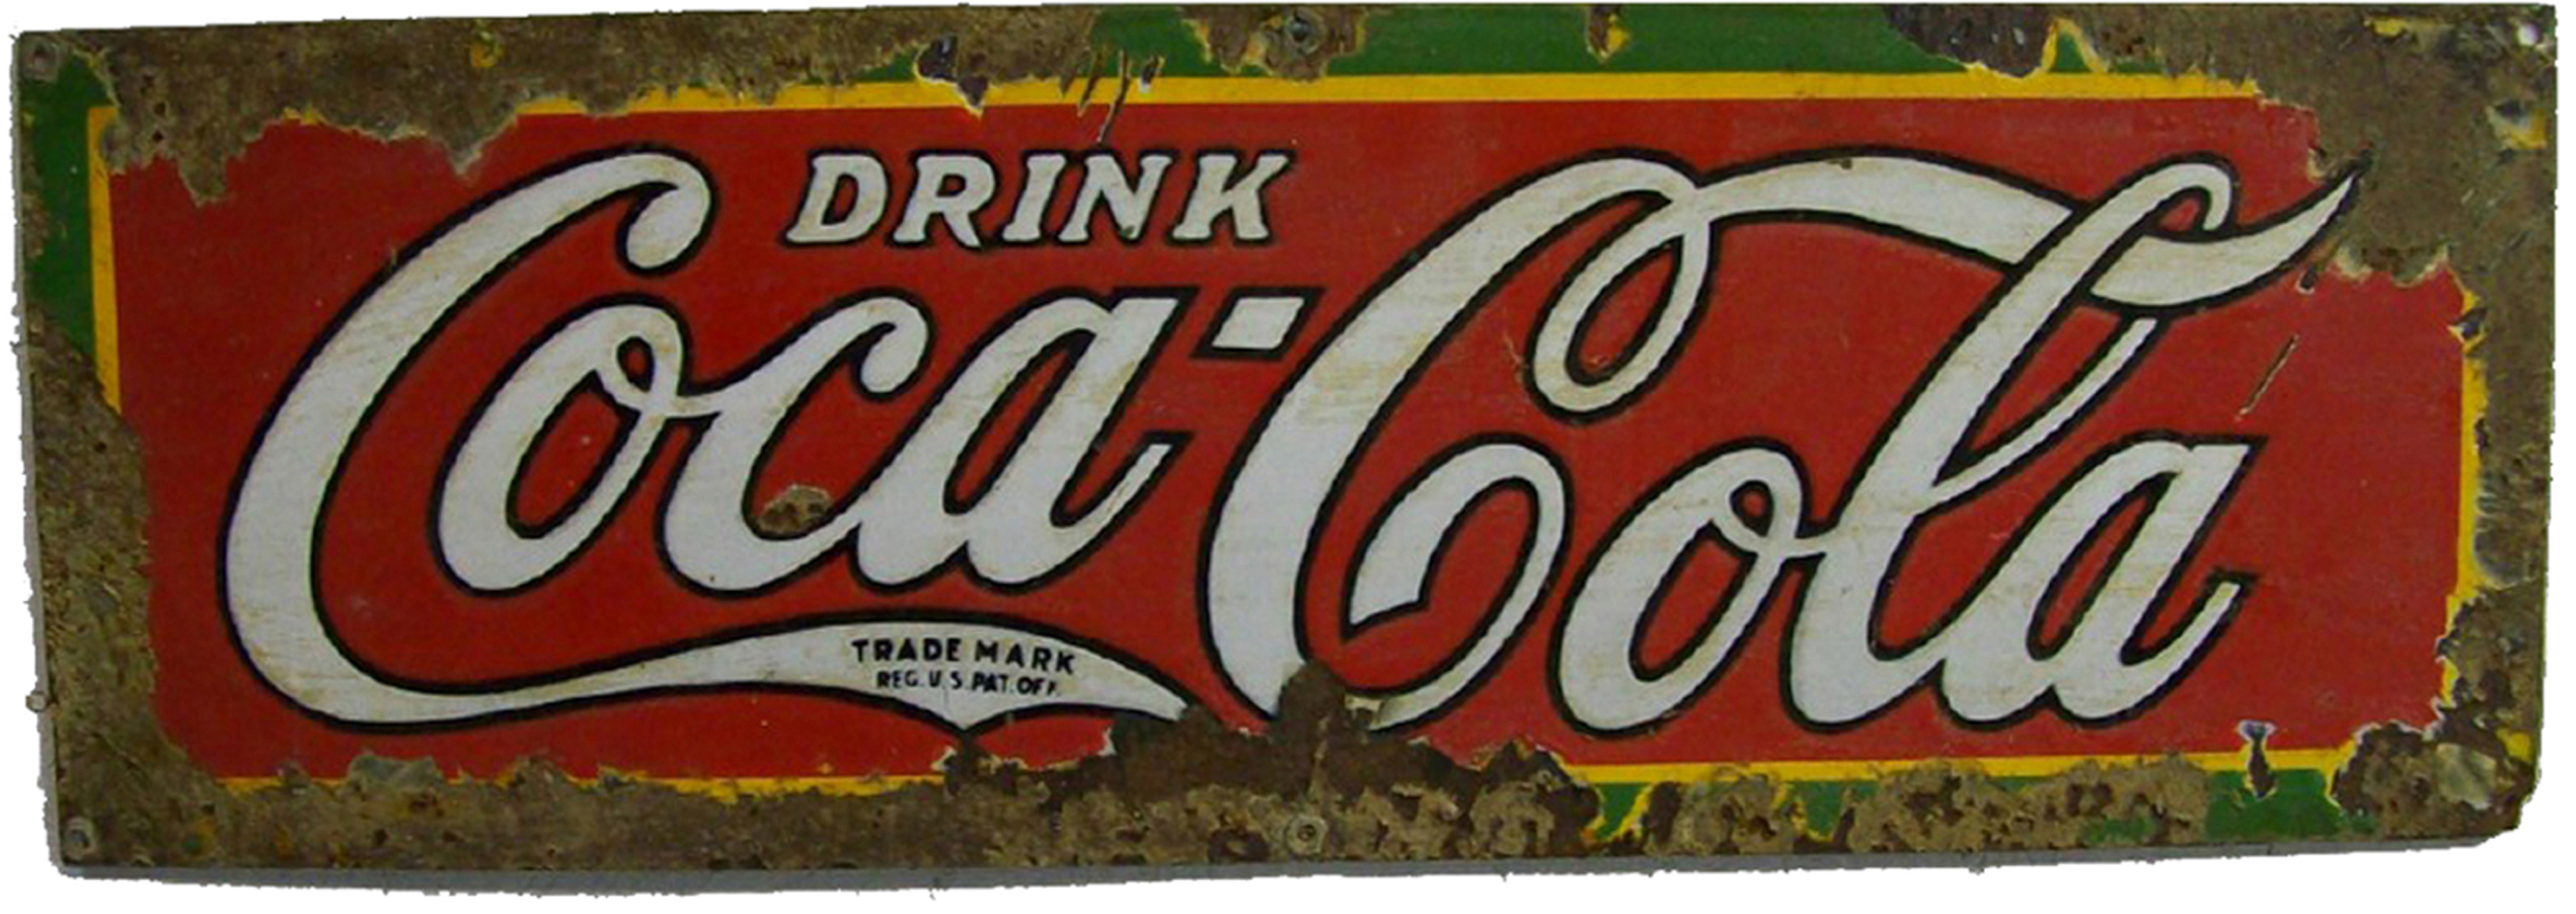 2010Gallery1/CocaCola10x301BeforeA.jpg